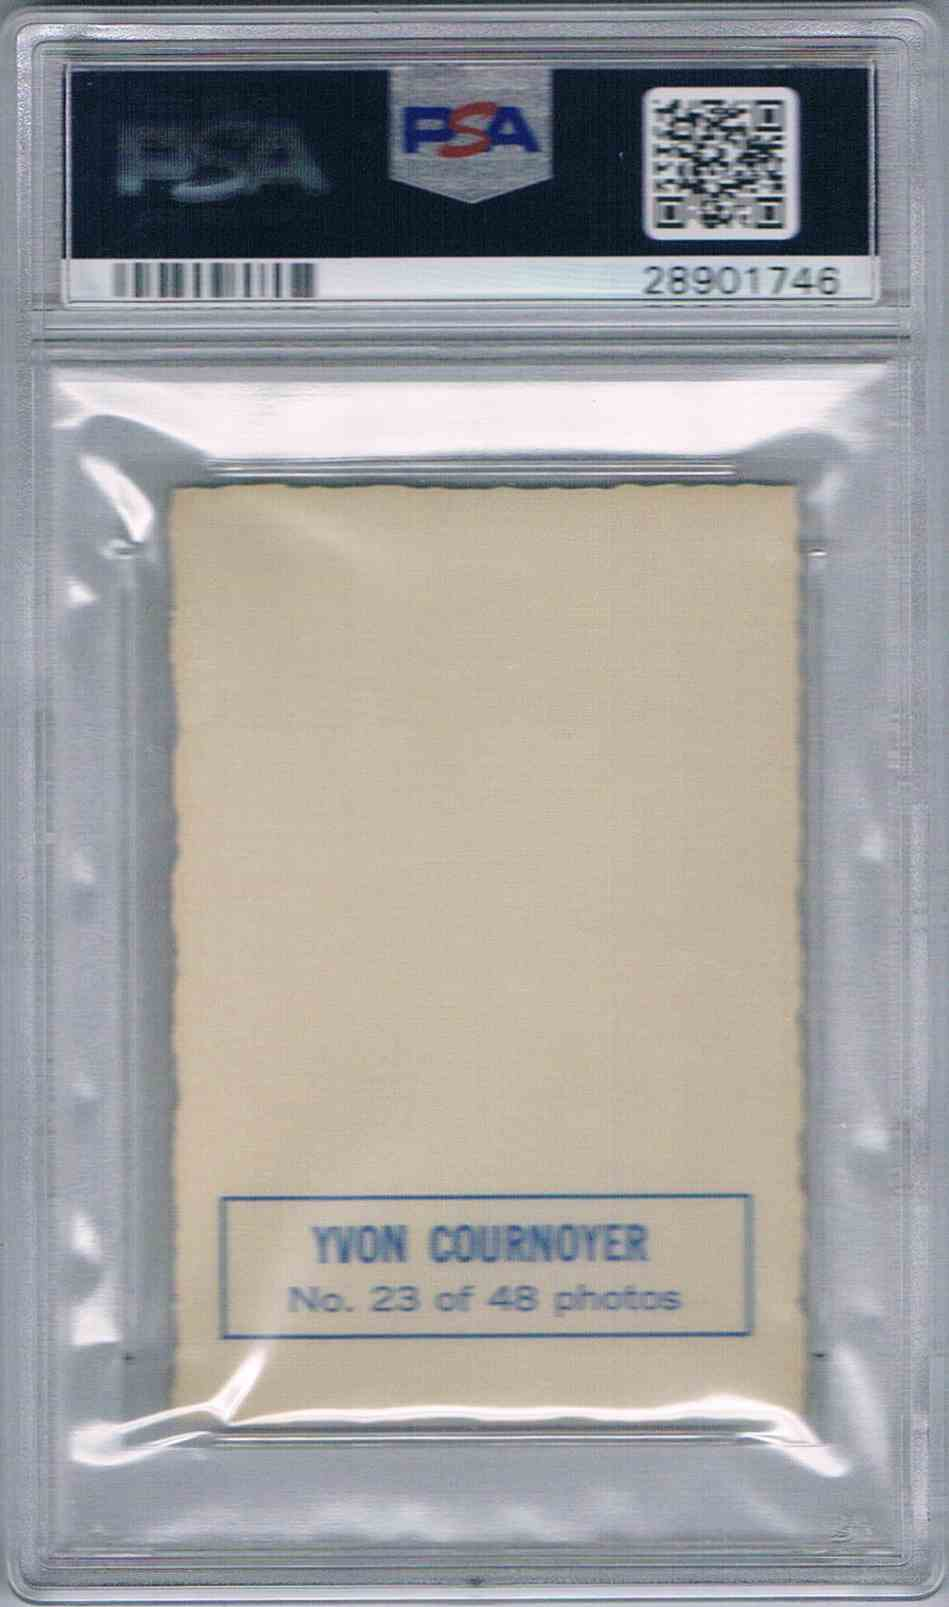 1970-71 O-Pee-Chee OPC Deckle Edge Yvan Yvon Cournoyer #23 card back image